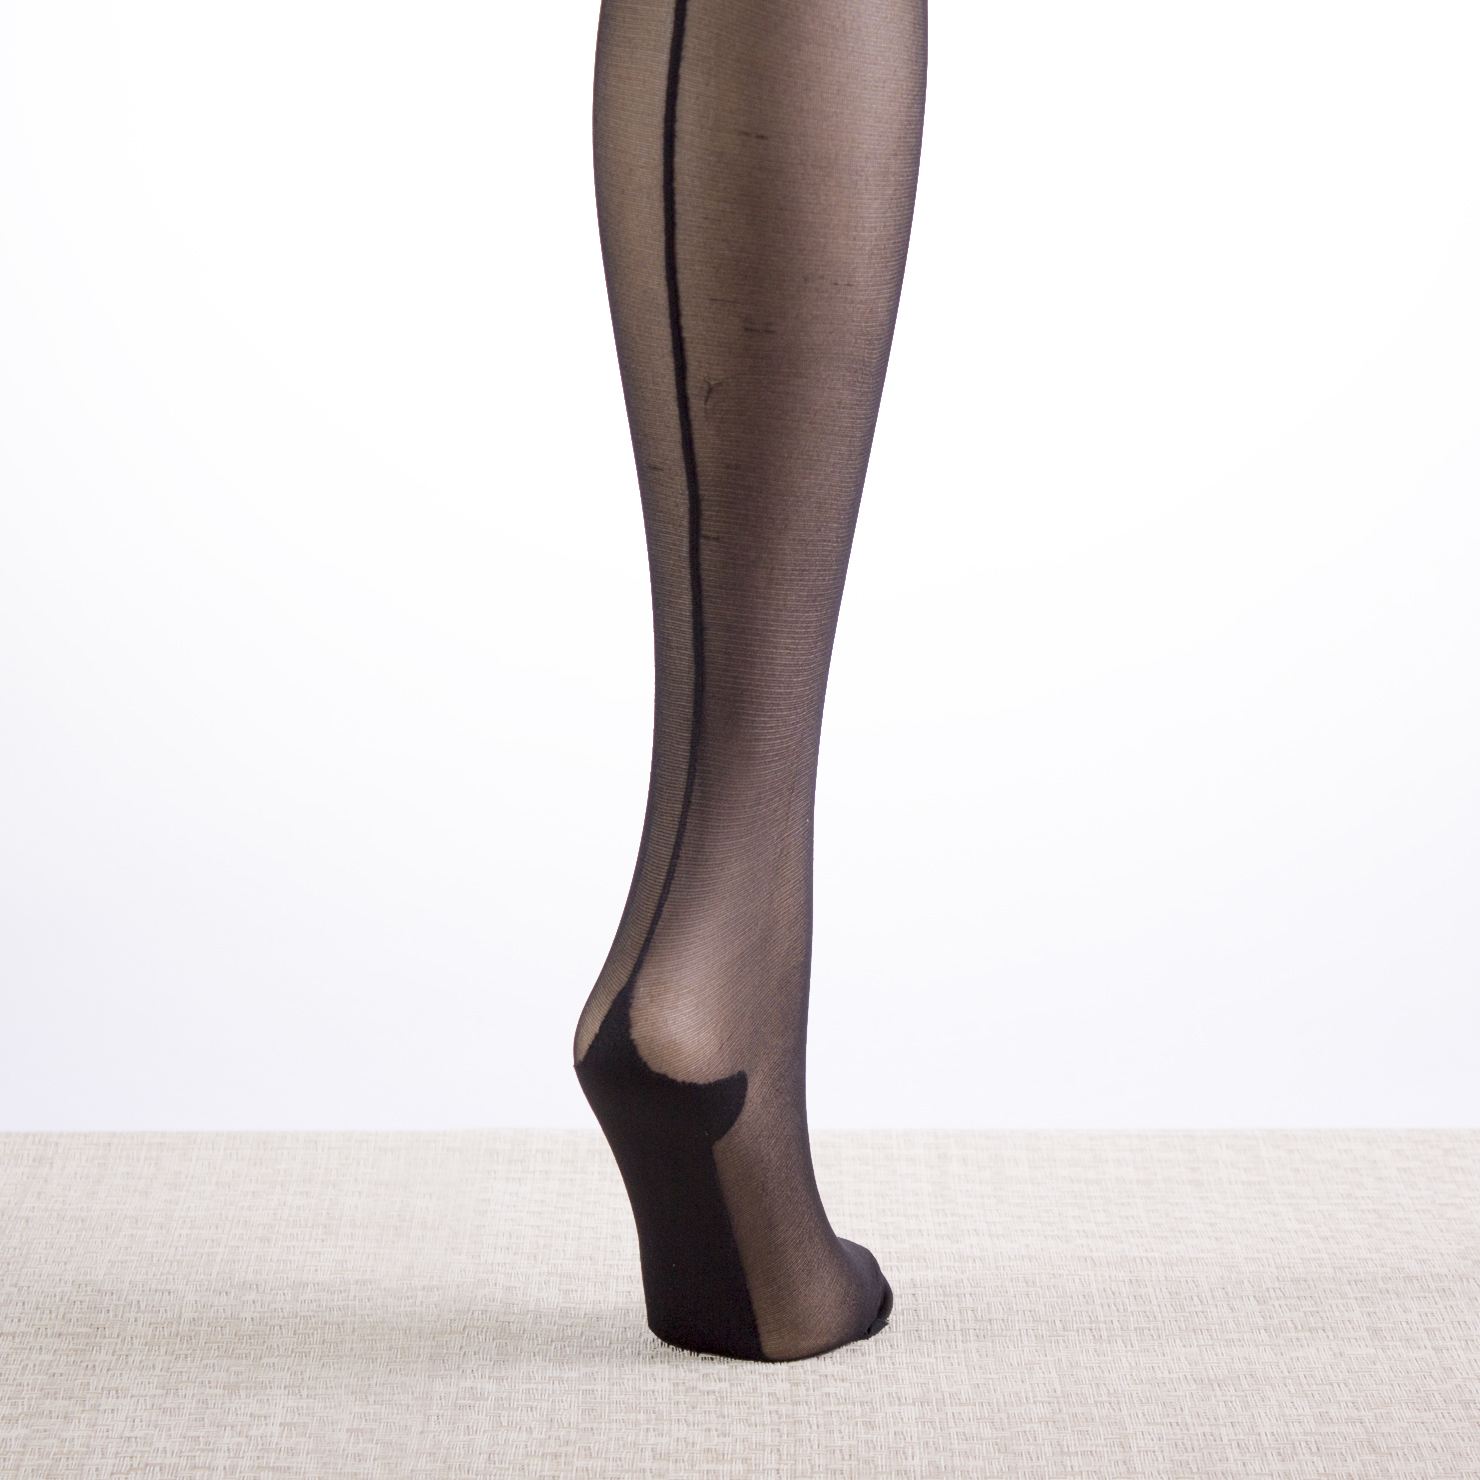 5b5526f79 Nylons For A Night Out - Indiana Landmarks